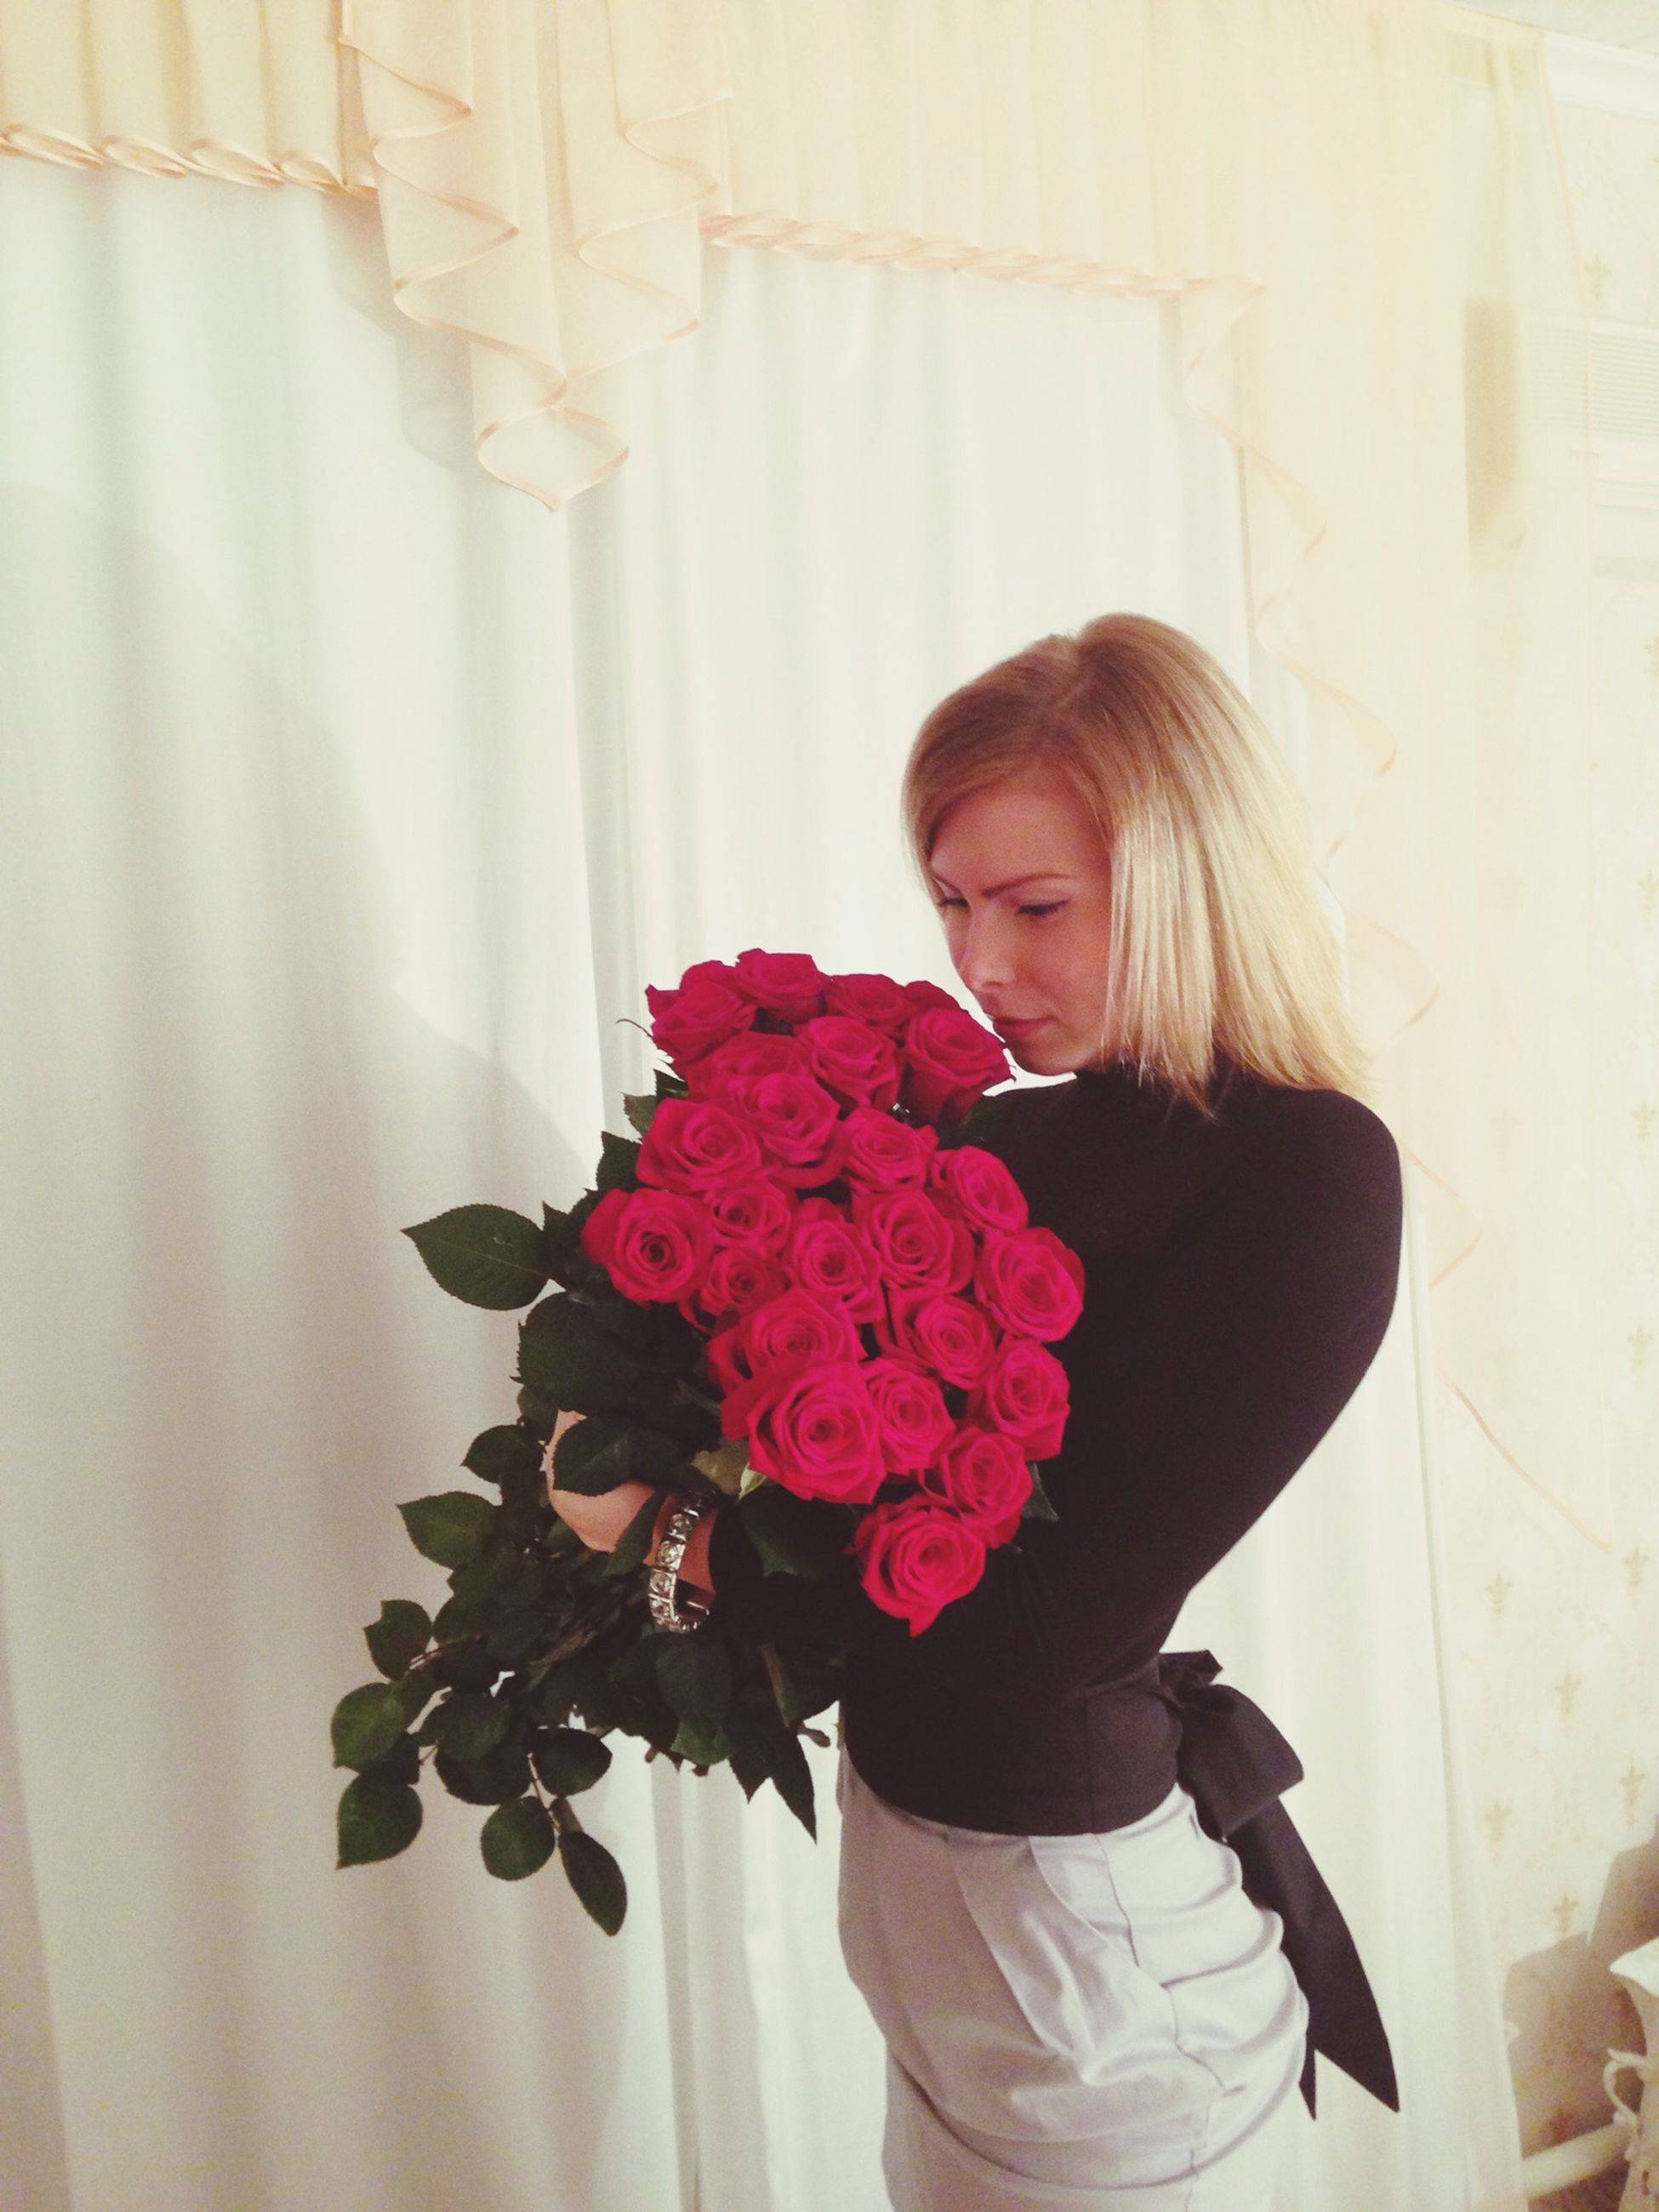 flower, lifestyles, person, casual clothing, leisure activity, young women, indoors, young adult, standing, front view, holding, girls, smiling, portrait, looking at camera, pink color, three quarter length, freshness